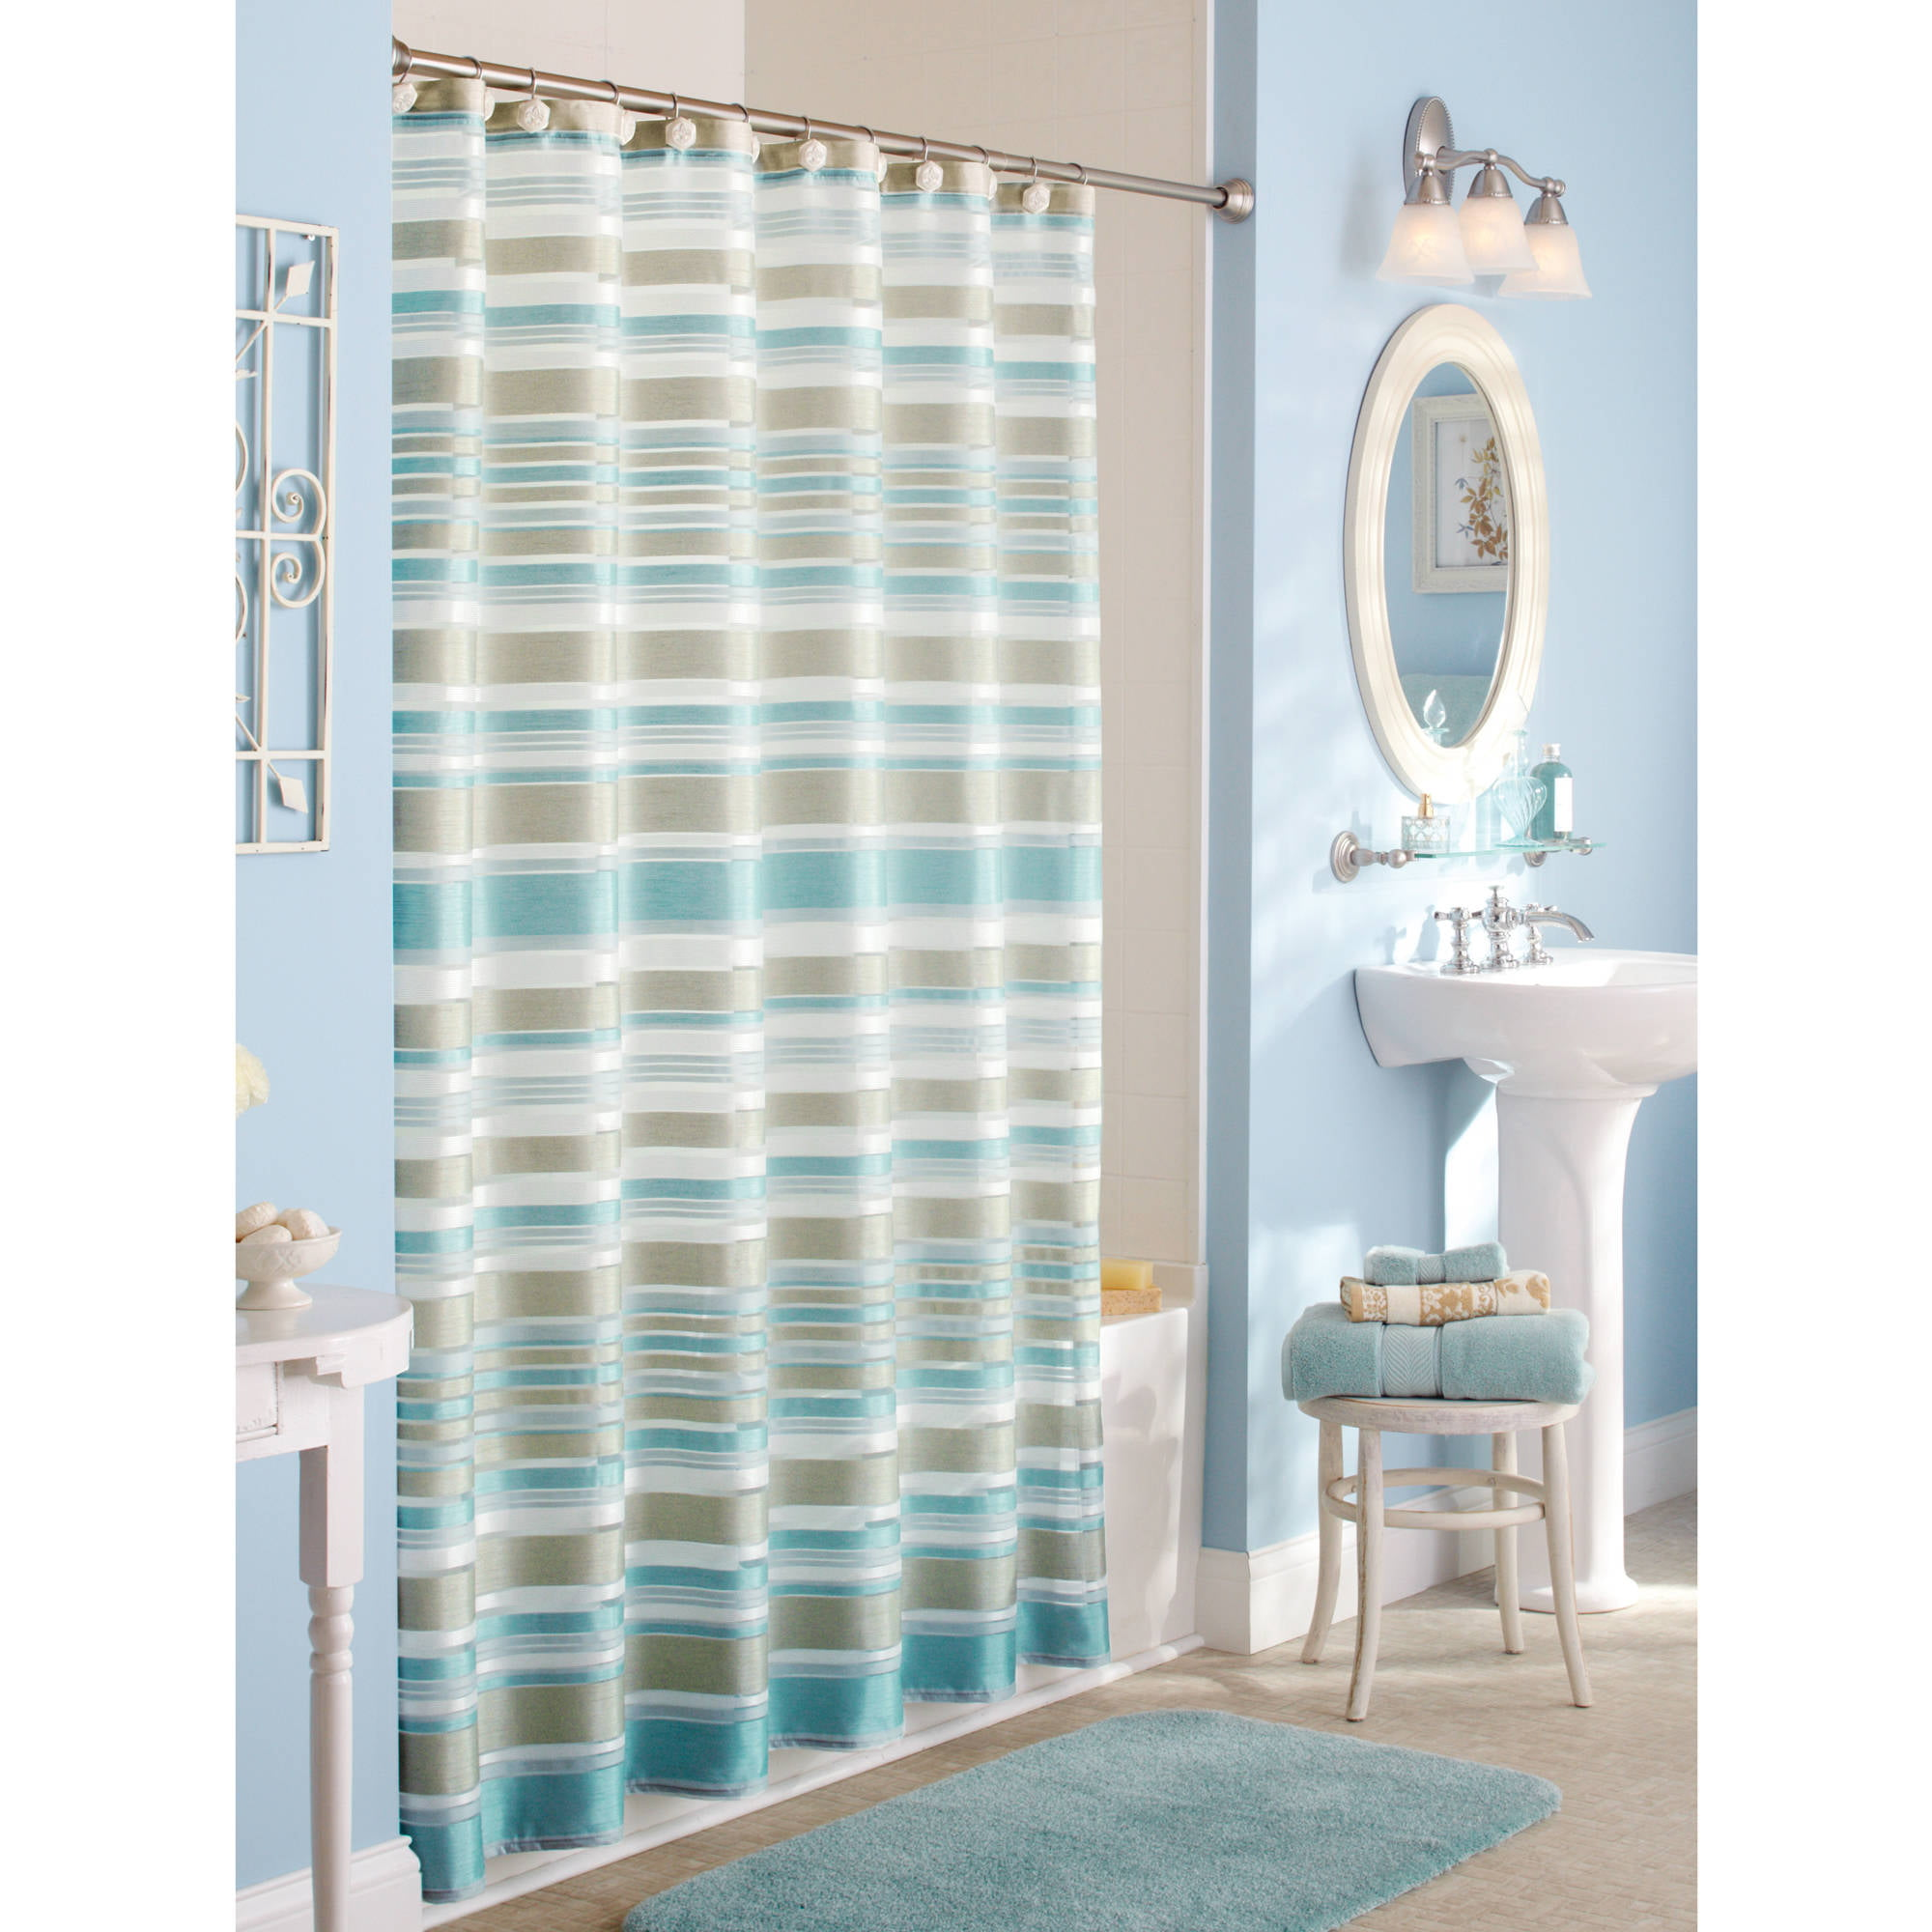 Chevron bathroom sets with shower curtain and rugs - Chevron Bathroom Sets With Shower Curtain And Rugs 23